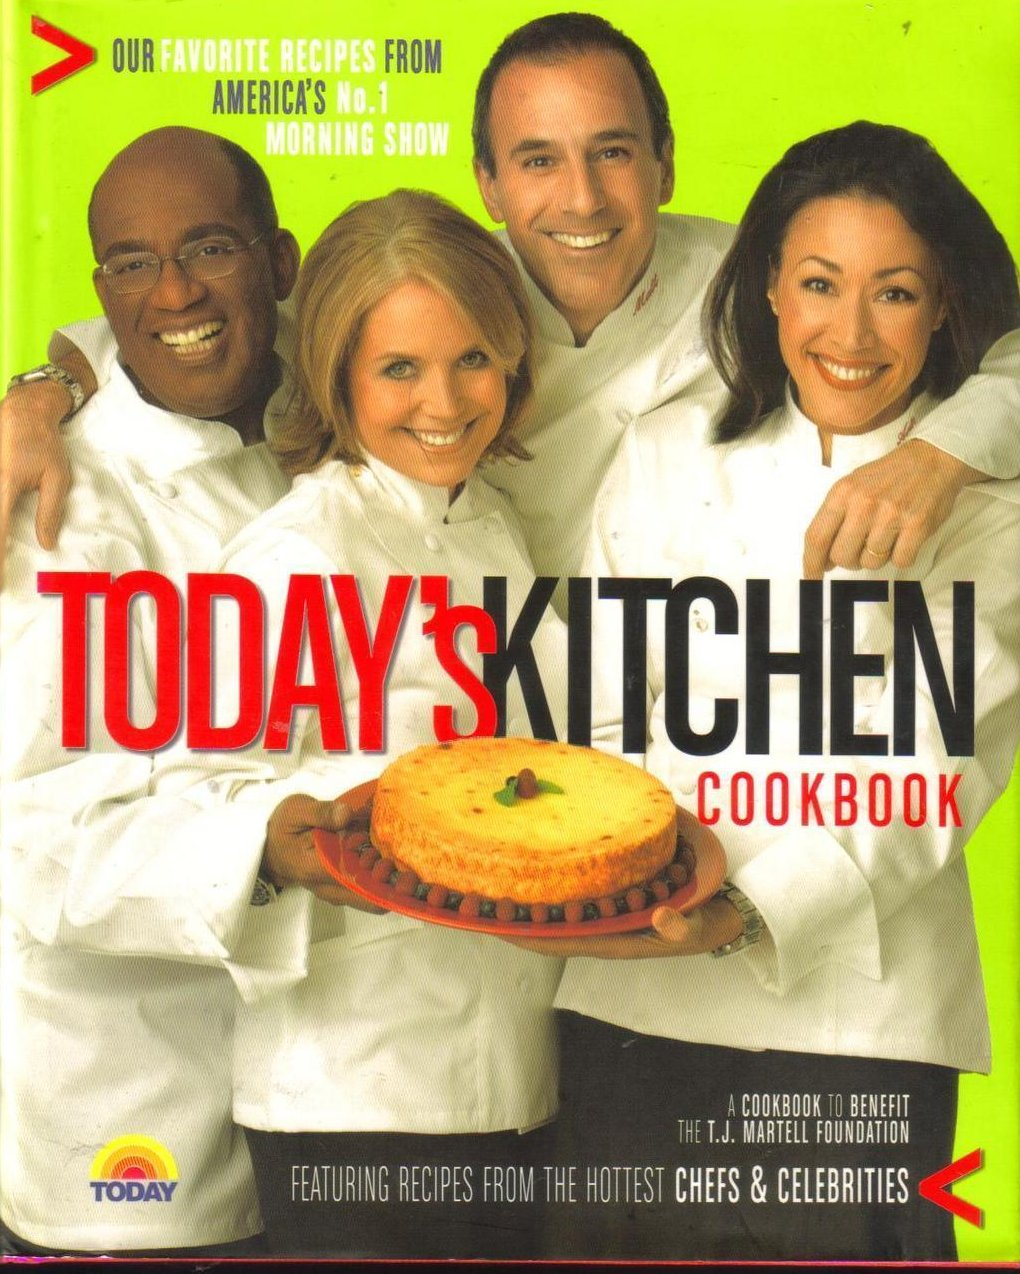 Cookbook Todays Kitchen Morning Show Today HCDJ